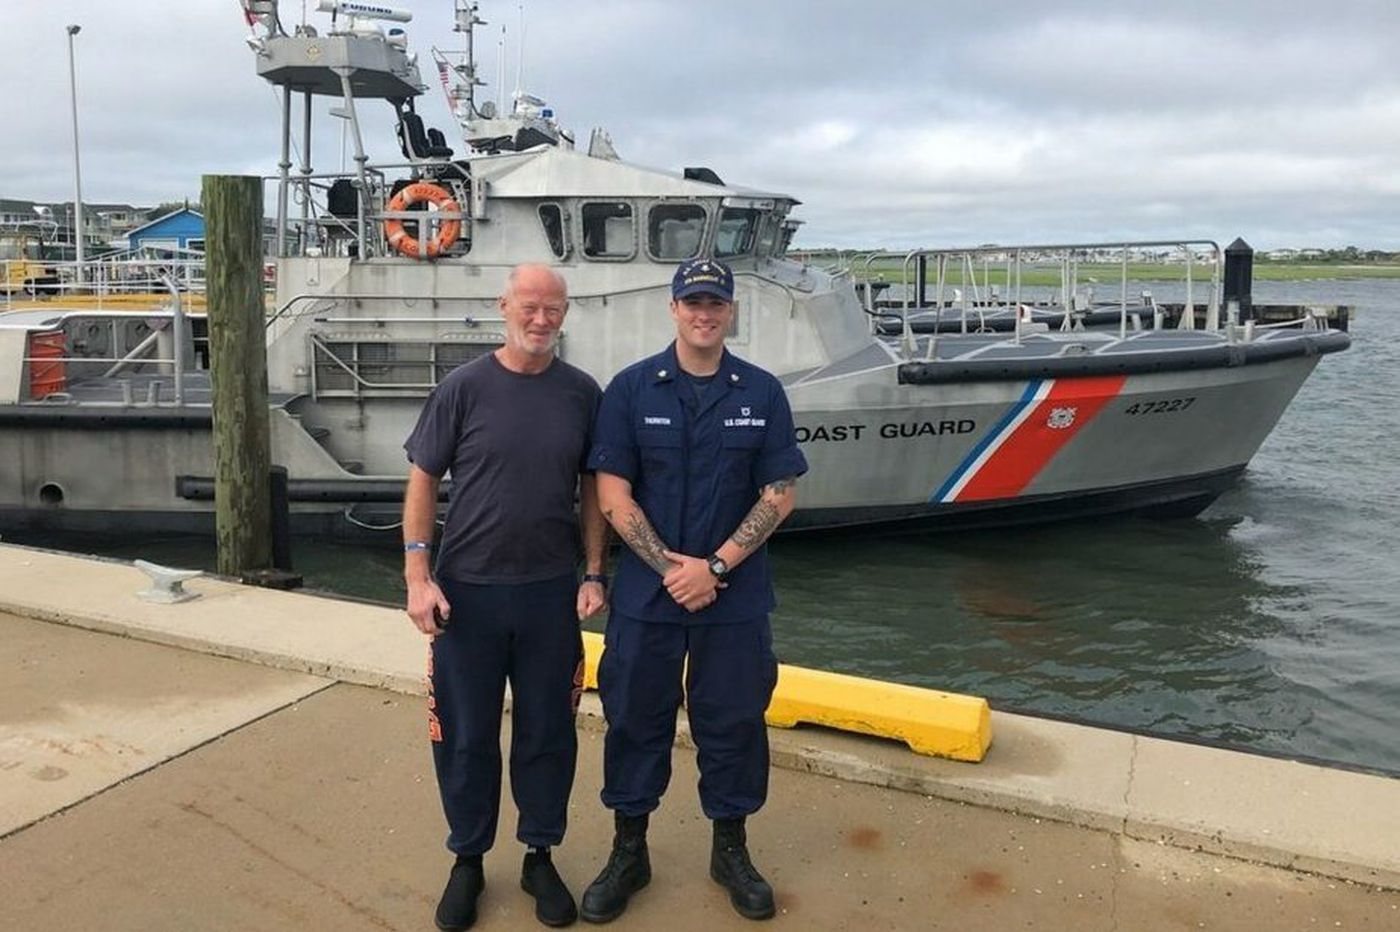 Coast Guard rescues would-be trans-Atlantic rower off New Jersey coast